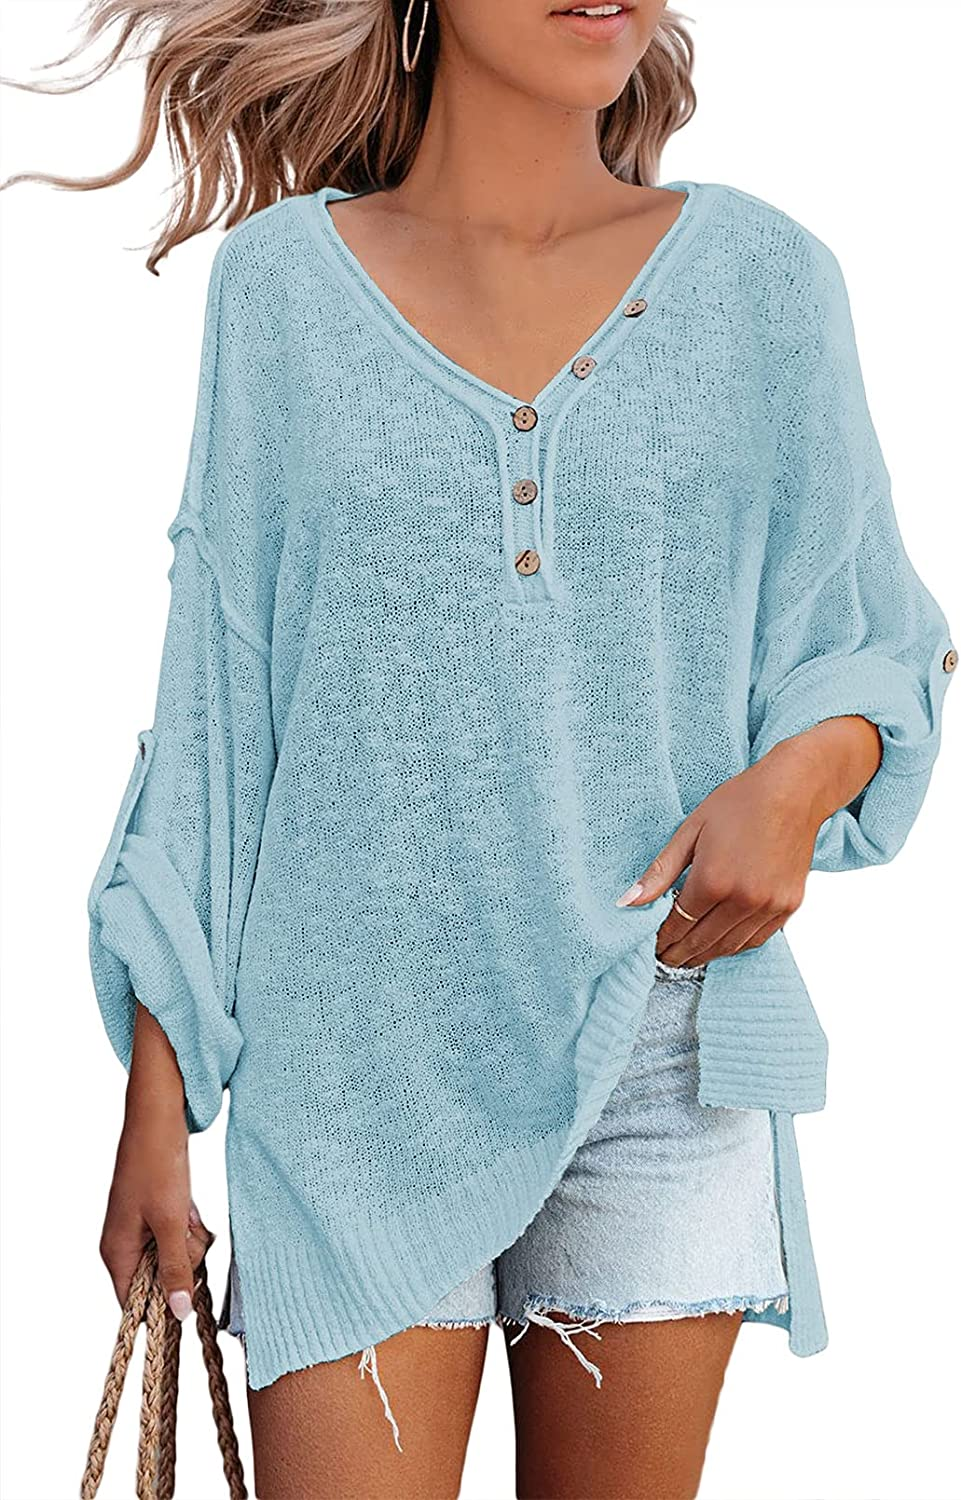 TOLENY Women's Casual V Neck Long Sleeve Oversized Lightweight Knitted Pullover Sweater